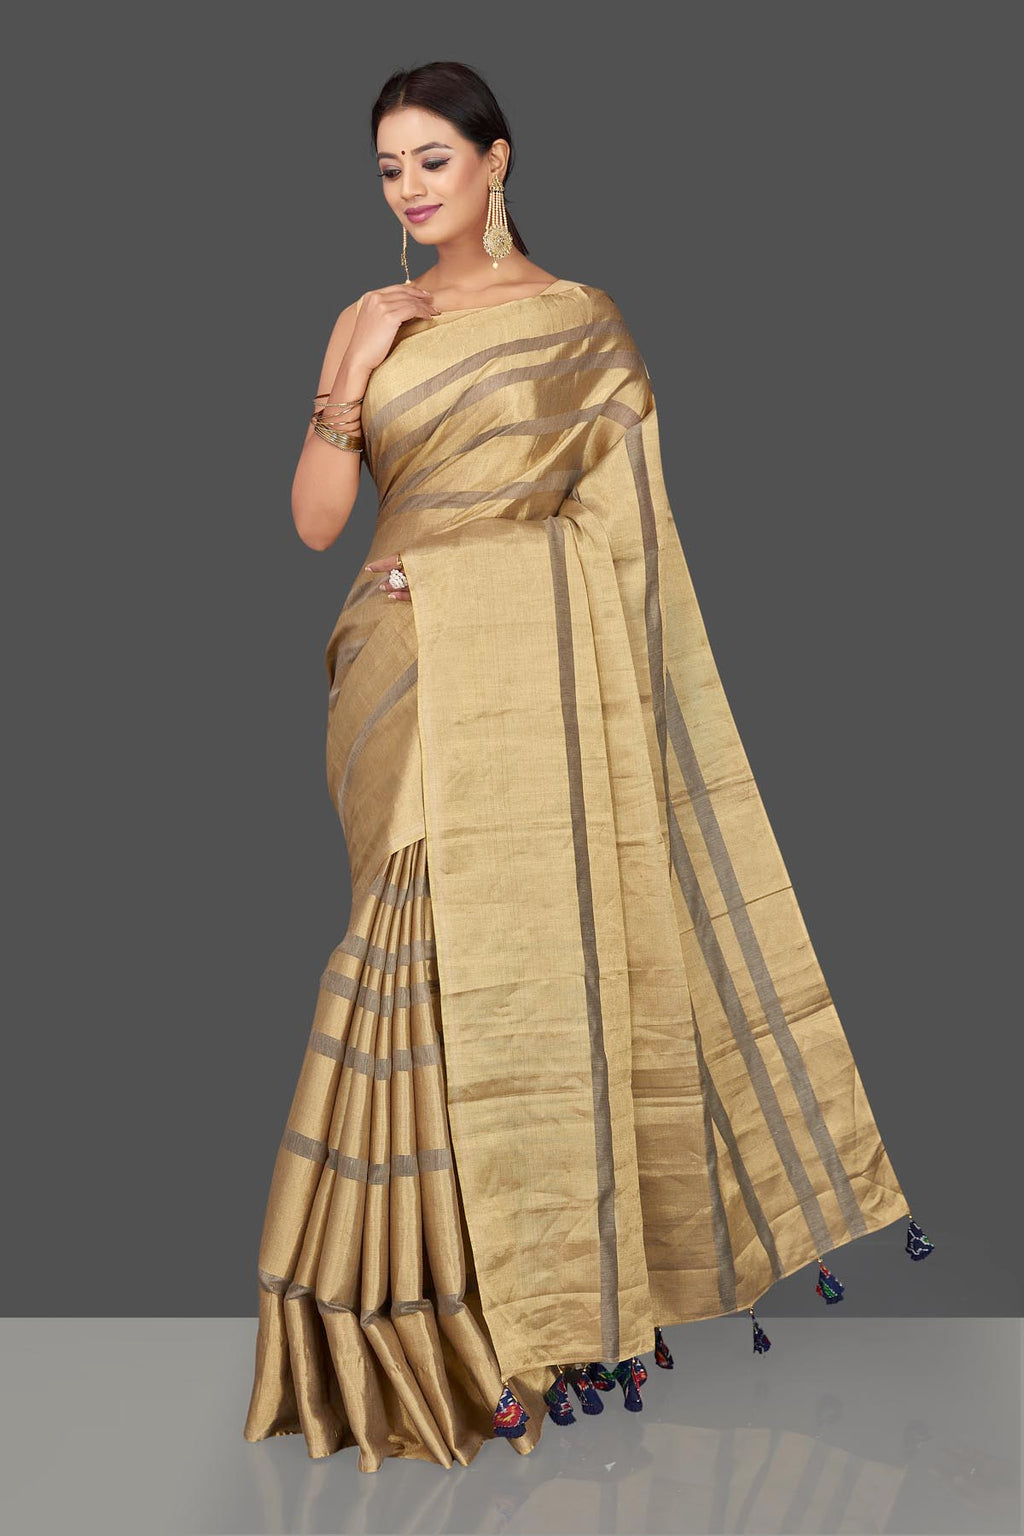 Shop golden tissue tassar saree online in USA with blue tassels on pallu. Keep it elegant with handwoven saris, Tassar silk sarees, tissue sarees from Pure Elegance Indian fashion boutique in USA. We bring a especially curated collection of ethnic sarees for Indian women in USA under one roof!-full view